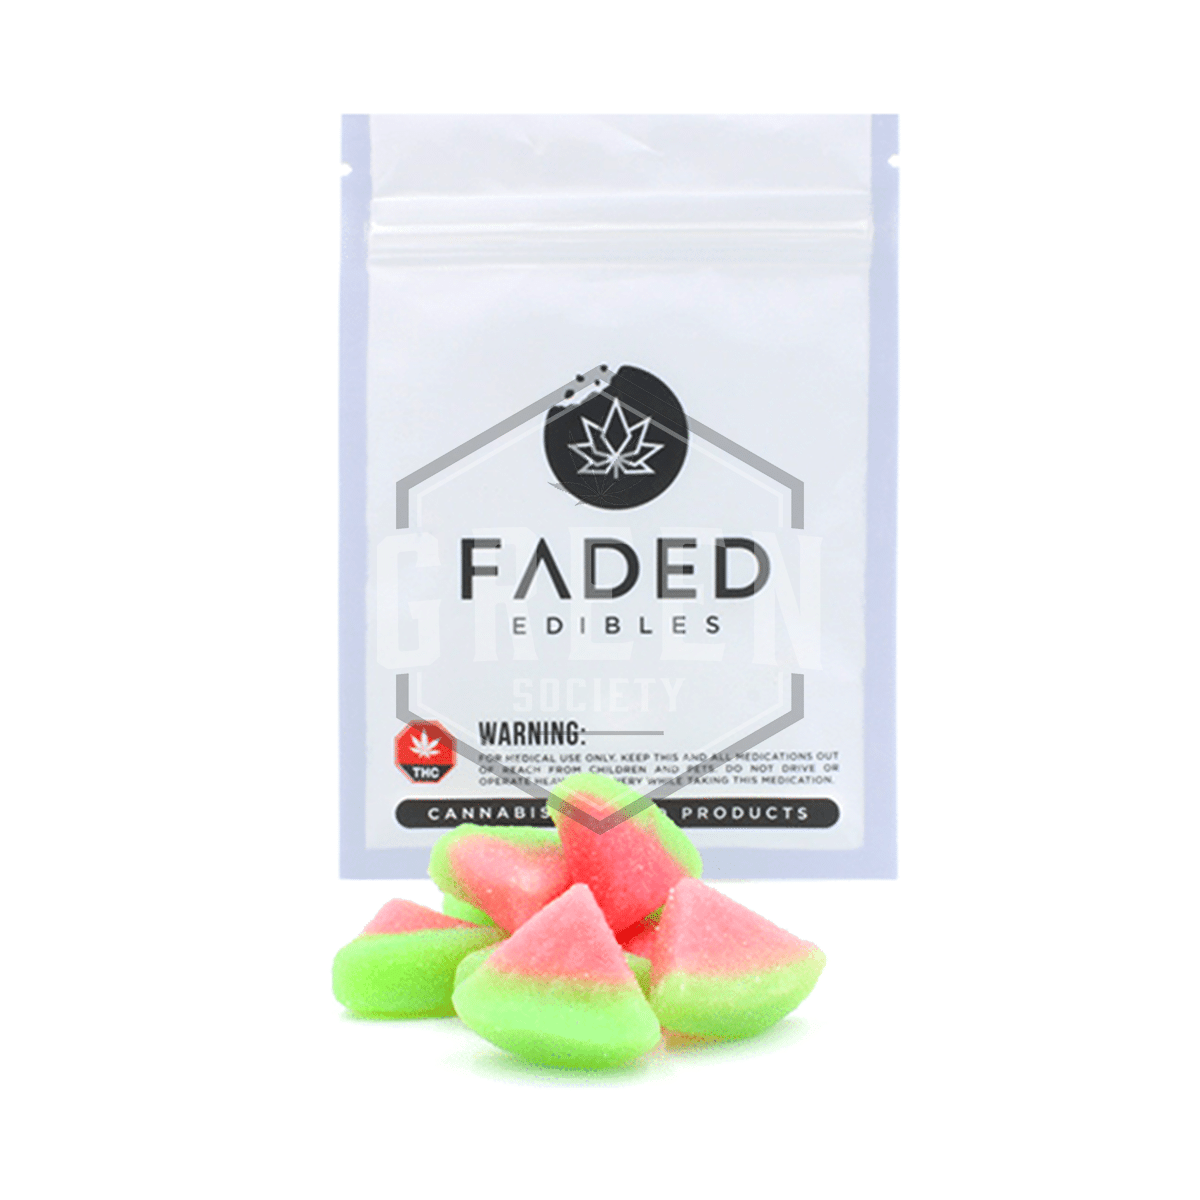 Wild Watermelons by Faded Cannabis Co. by Green Society - Image © 2018 Green Society. All Rights Reserved.